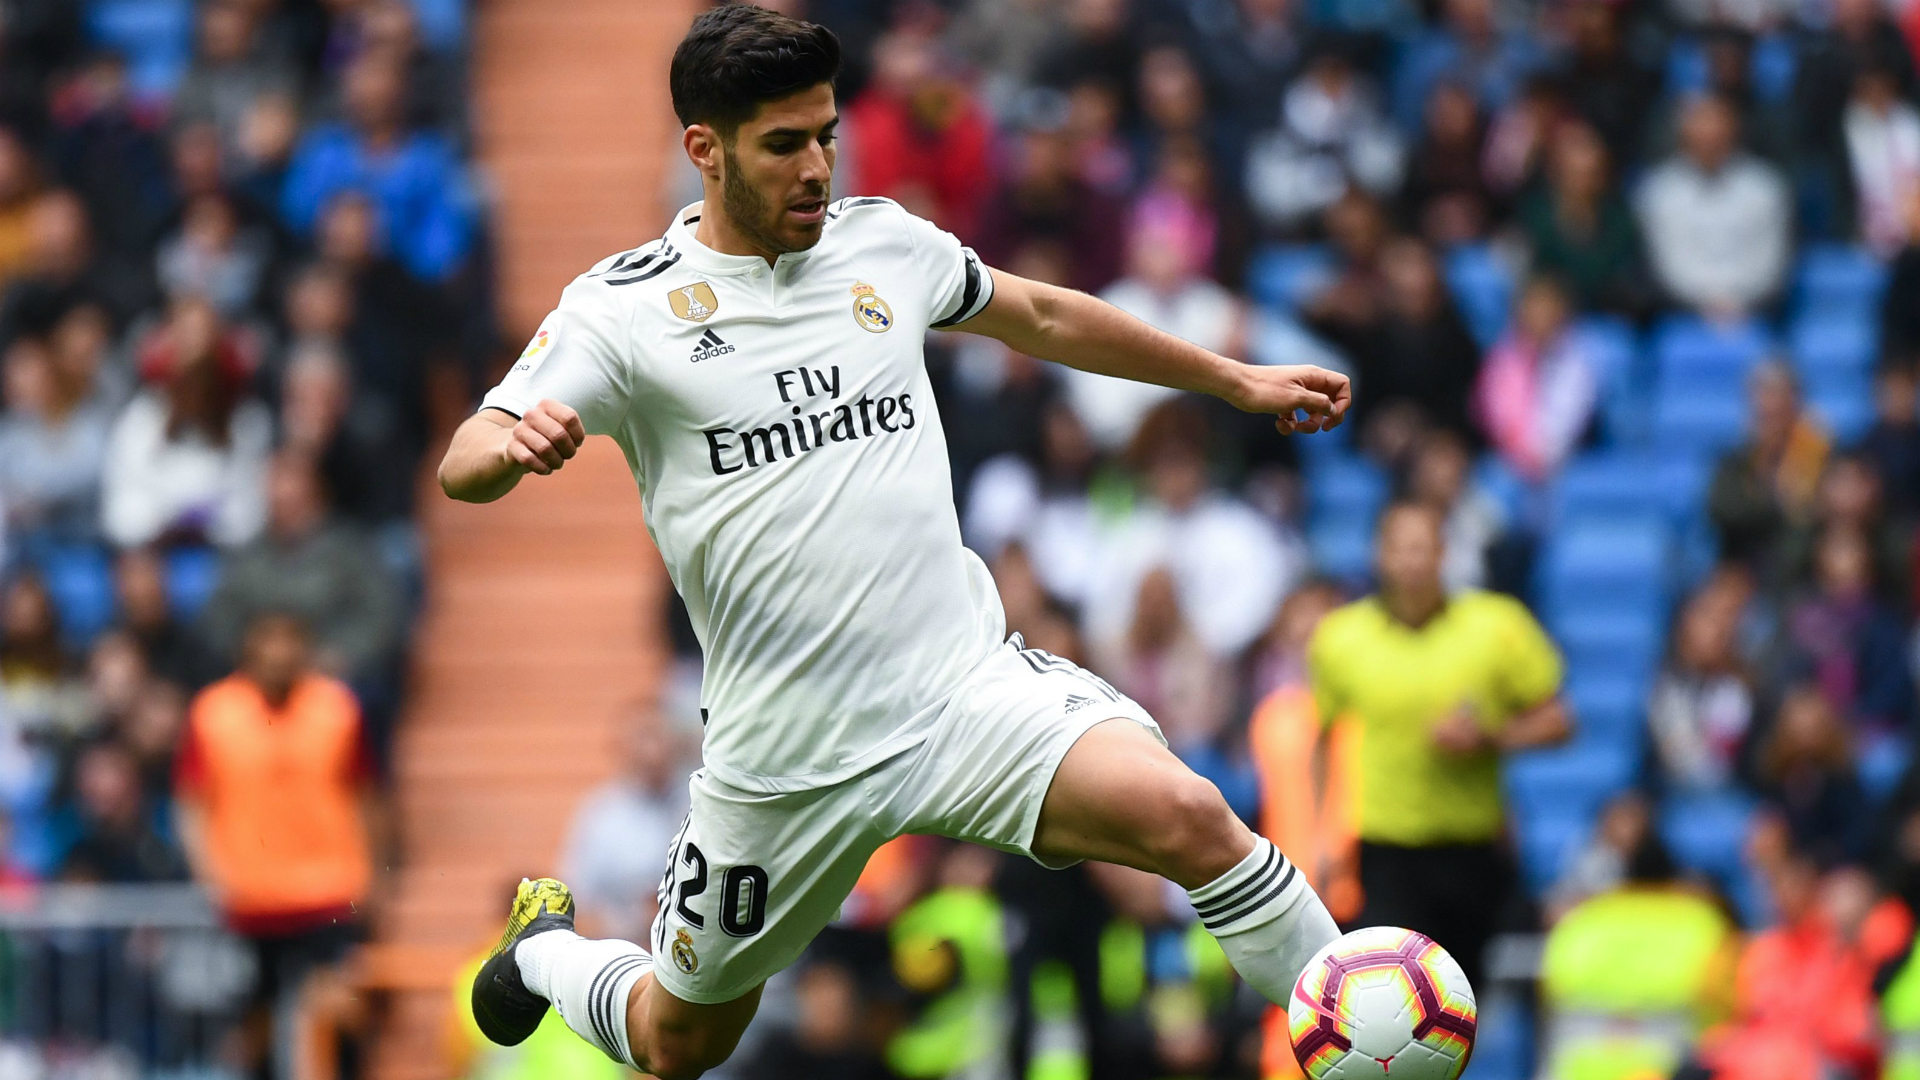 Madrid have turned down €180m for Asensio, says agent